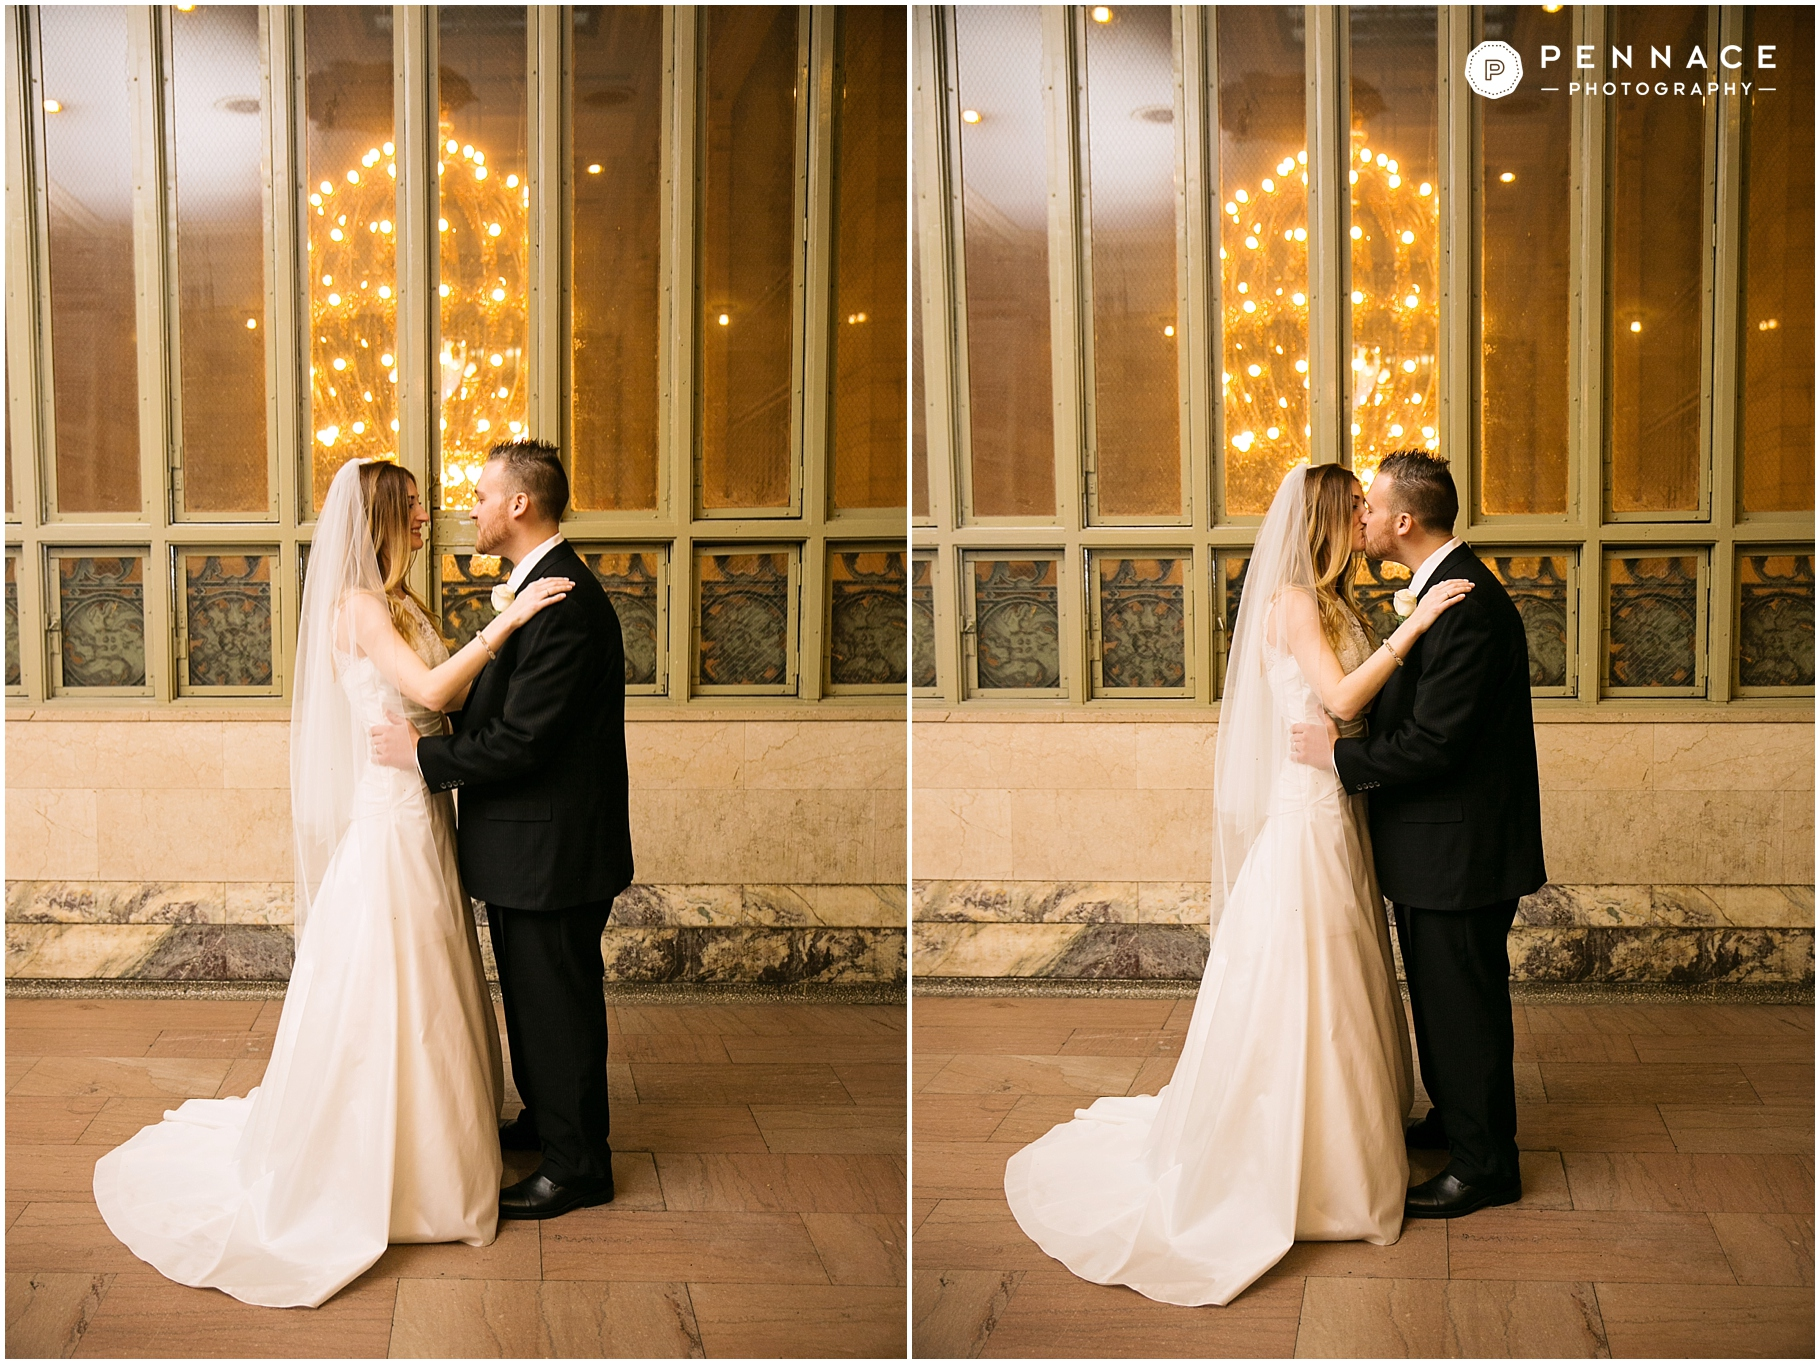 Getting married in Grand Central Station